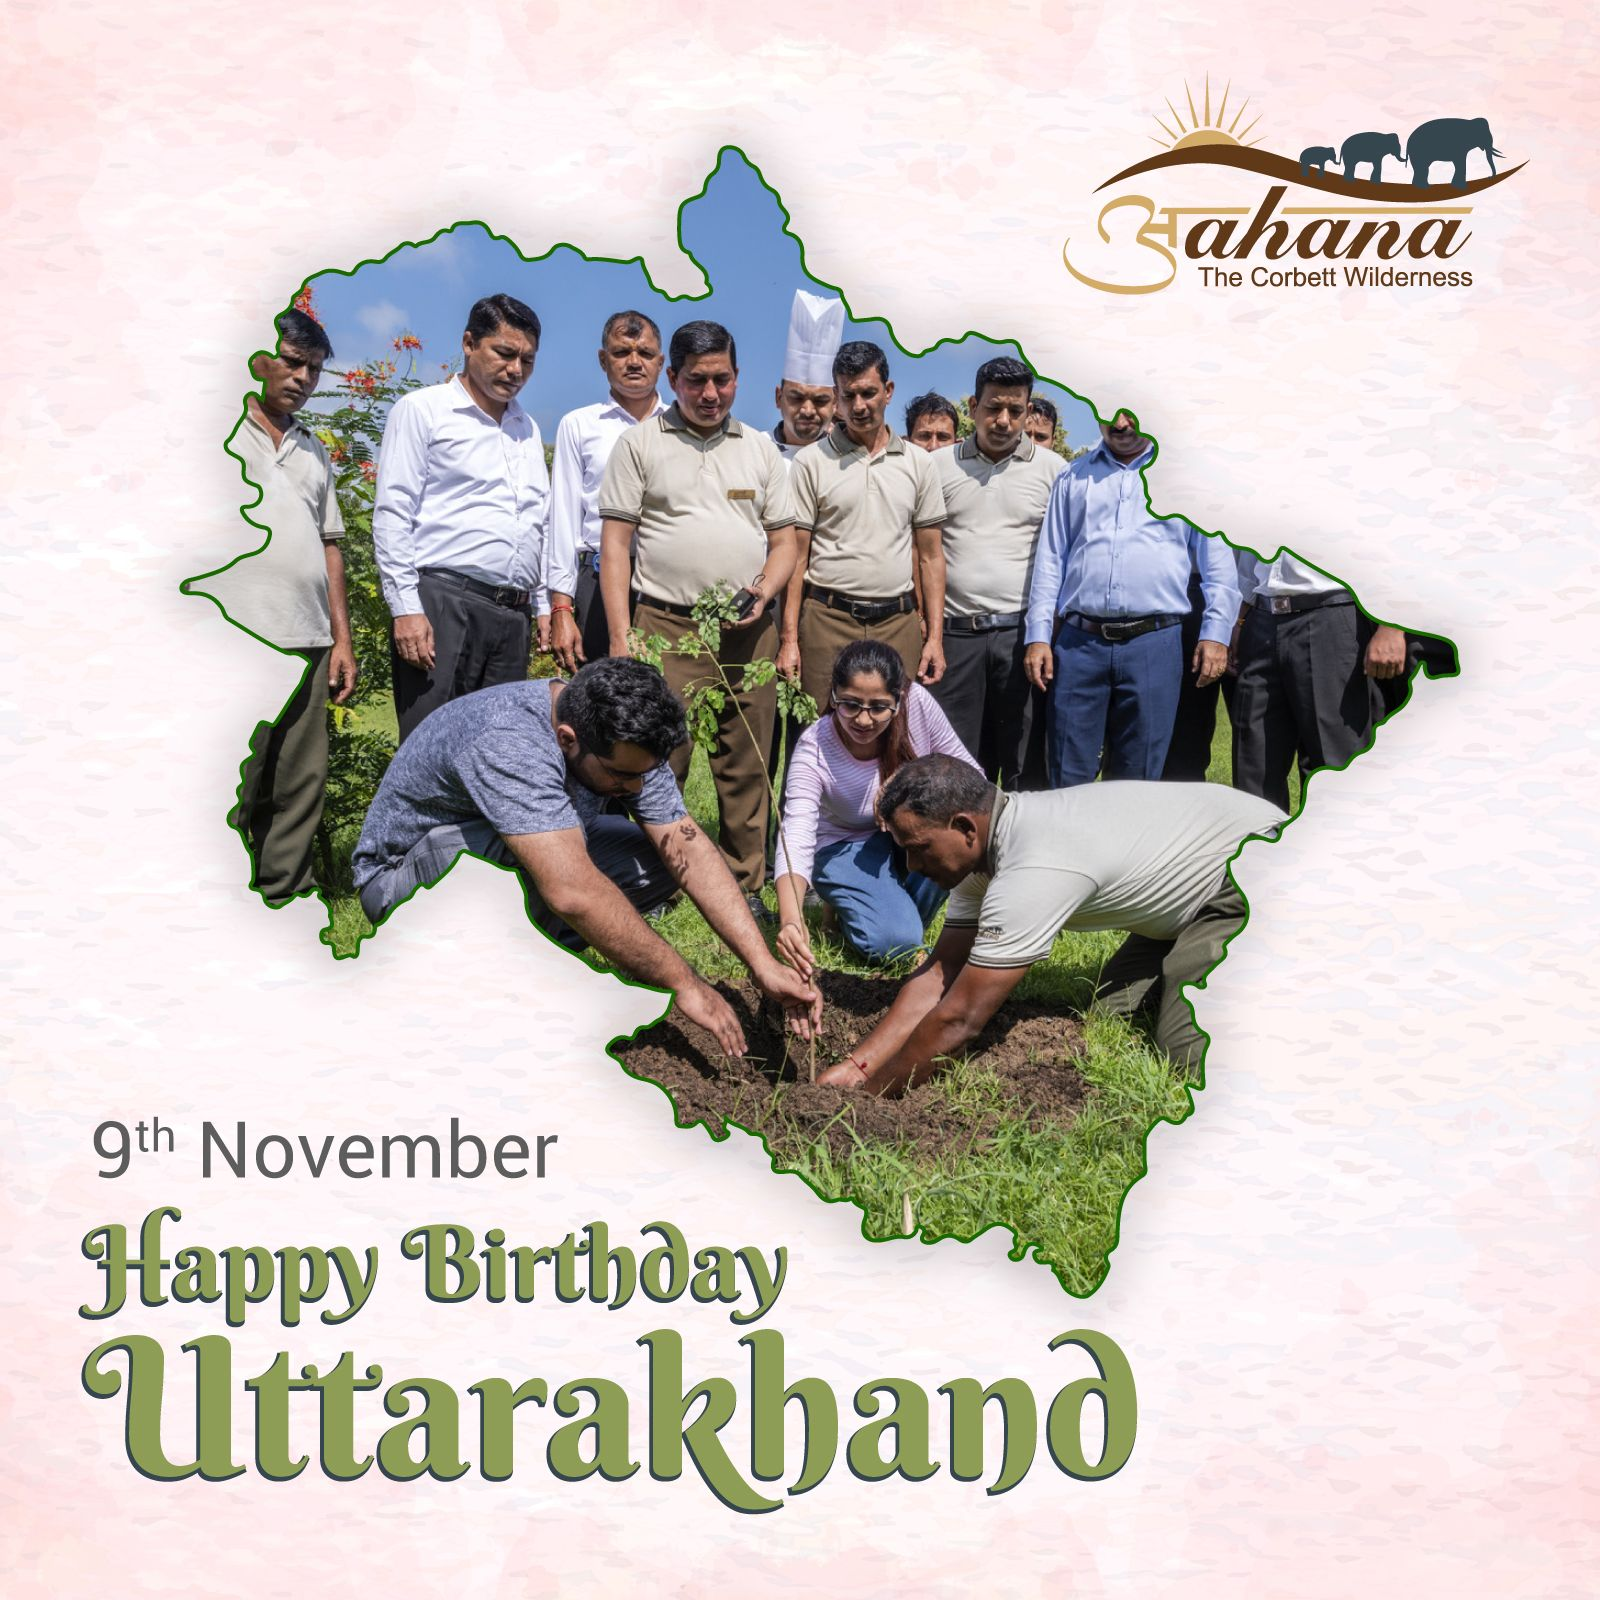 The Abode Of The Gods Uttarakhand Join Us As We Celebrateataahana The Birthday Of Our State Warm Wishes From The F Project Tiger Uttarakhand Jim Corbett